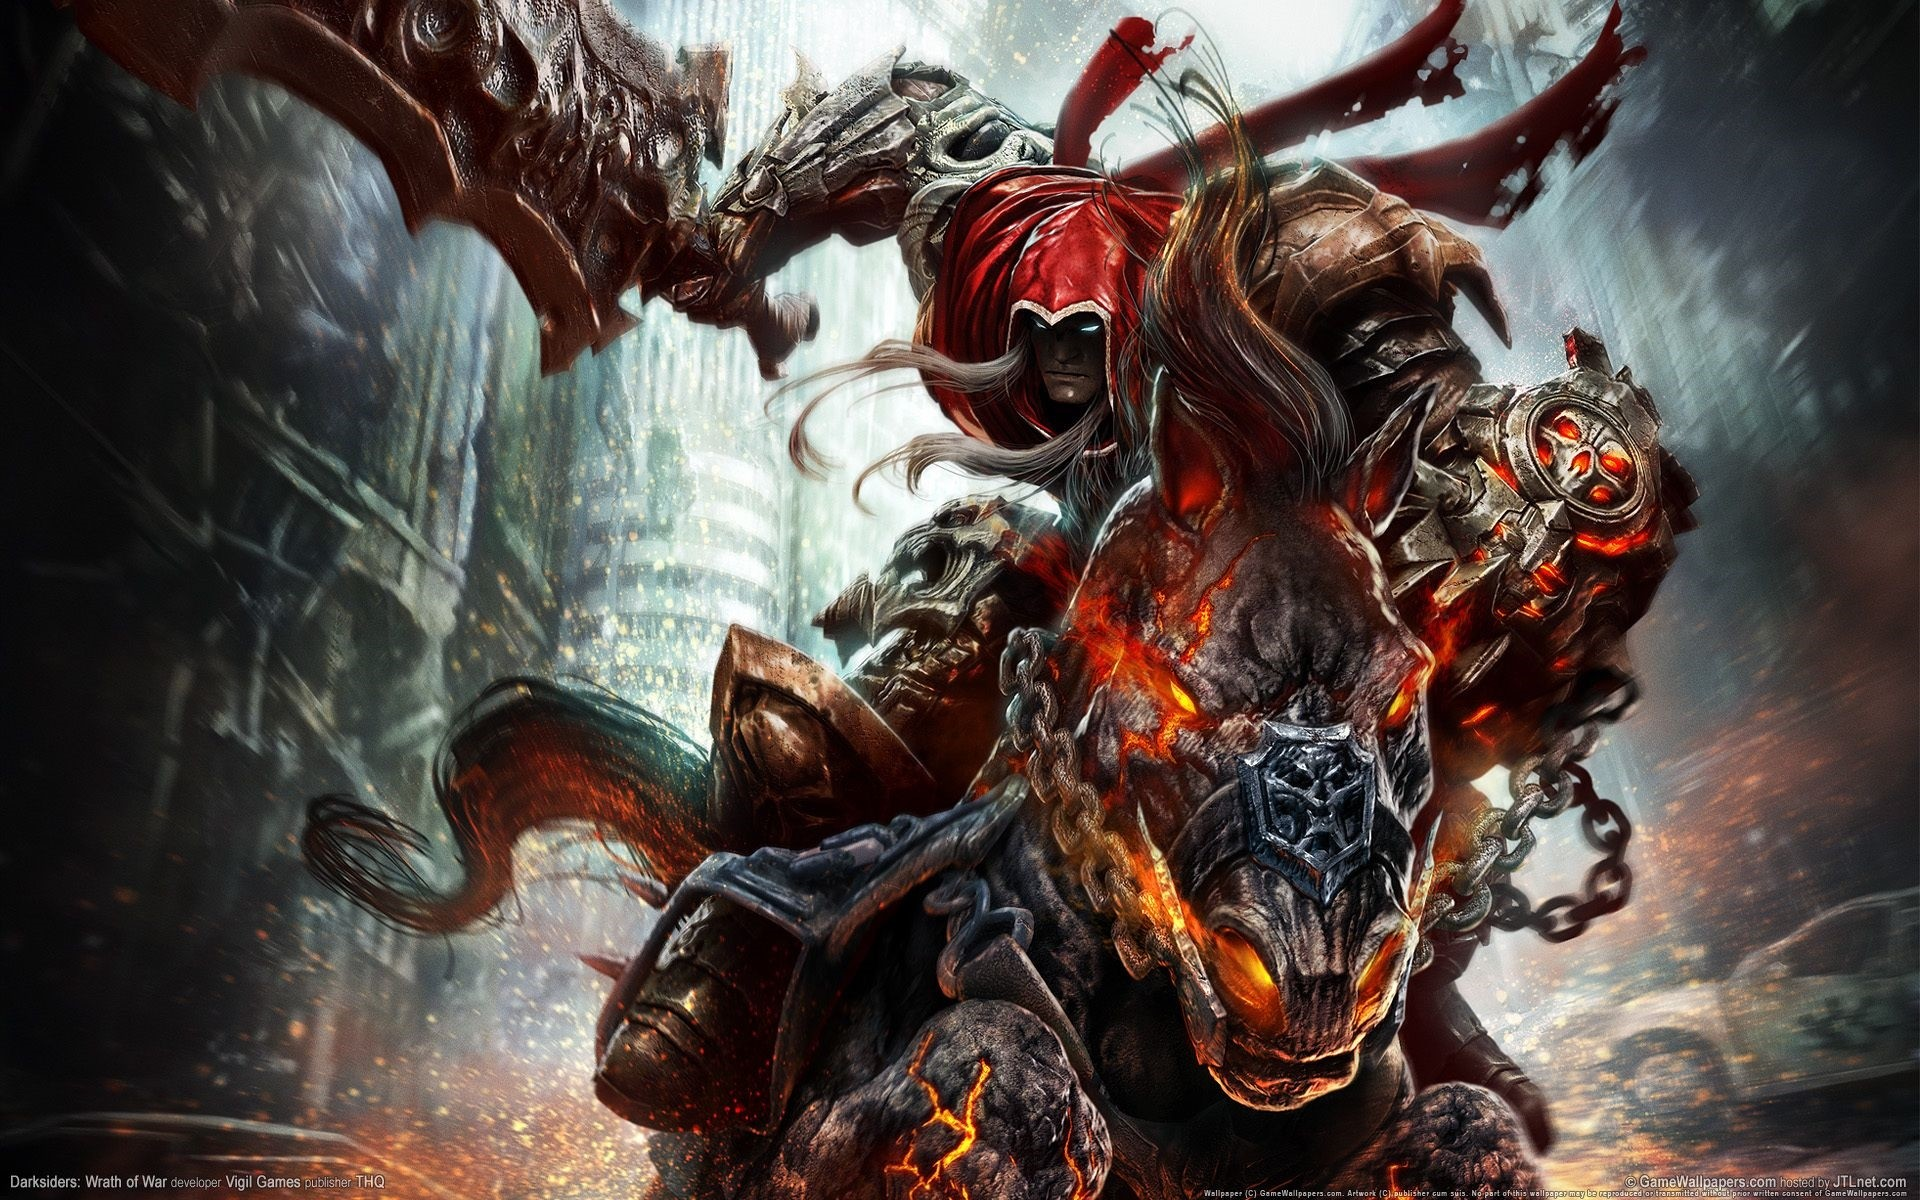 … Cool Call Of Duty Wallpapers awesome darksiders wallpaper …